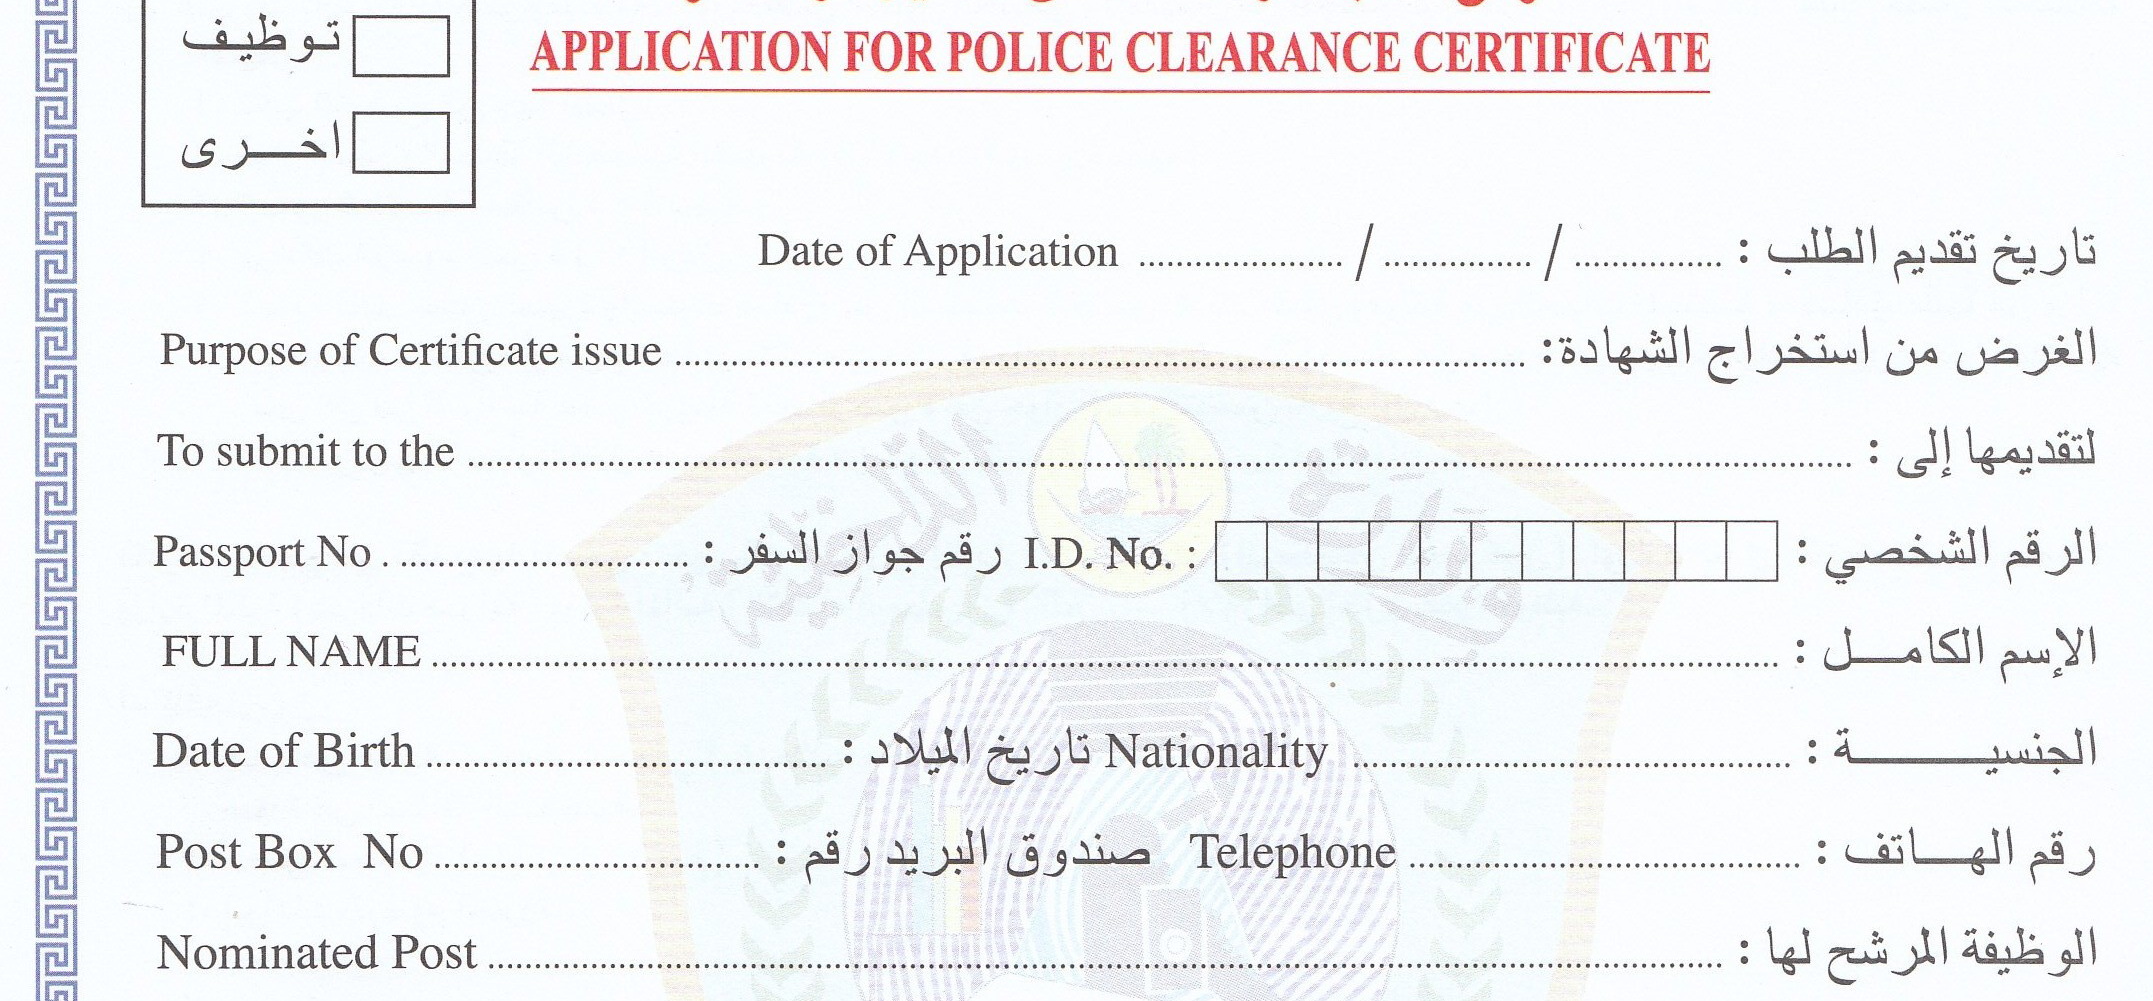 Police clearance certificate qatar living police clearance certificate xflitez Choice Image